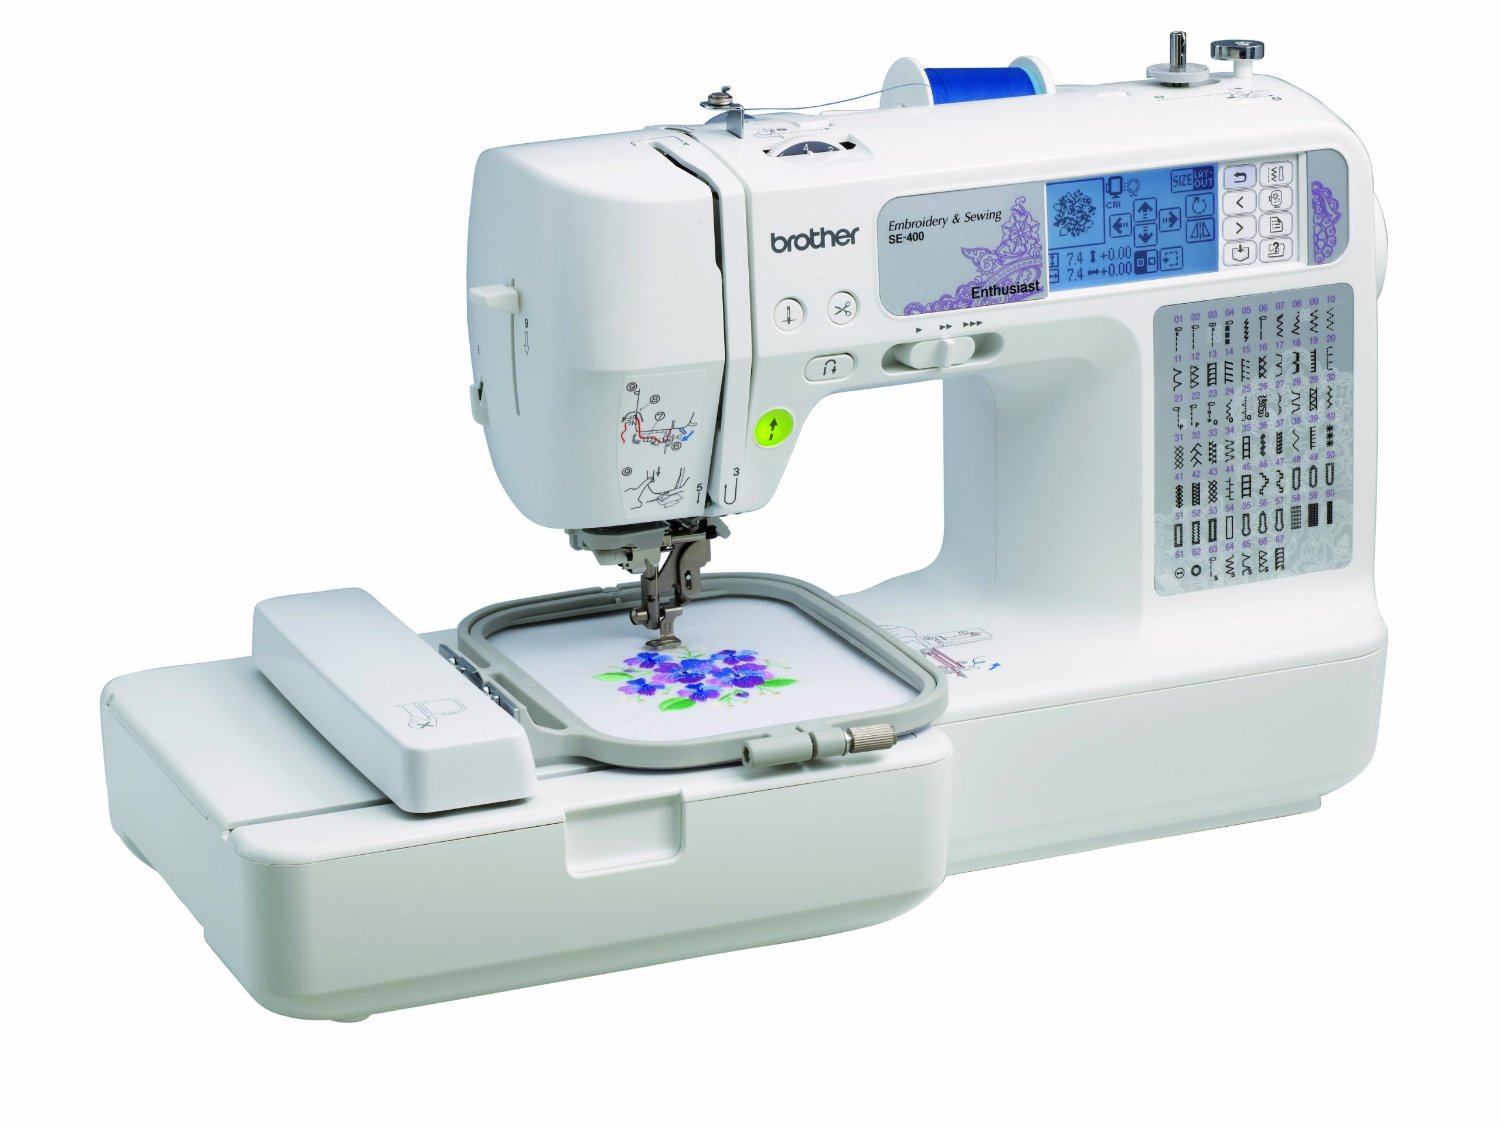 Review of Brother SE400 Computerized Sewing and 4x4 Embroidery Machine